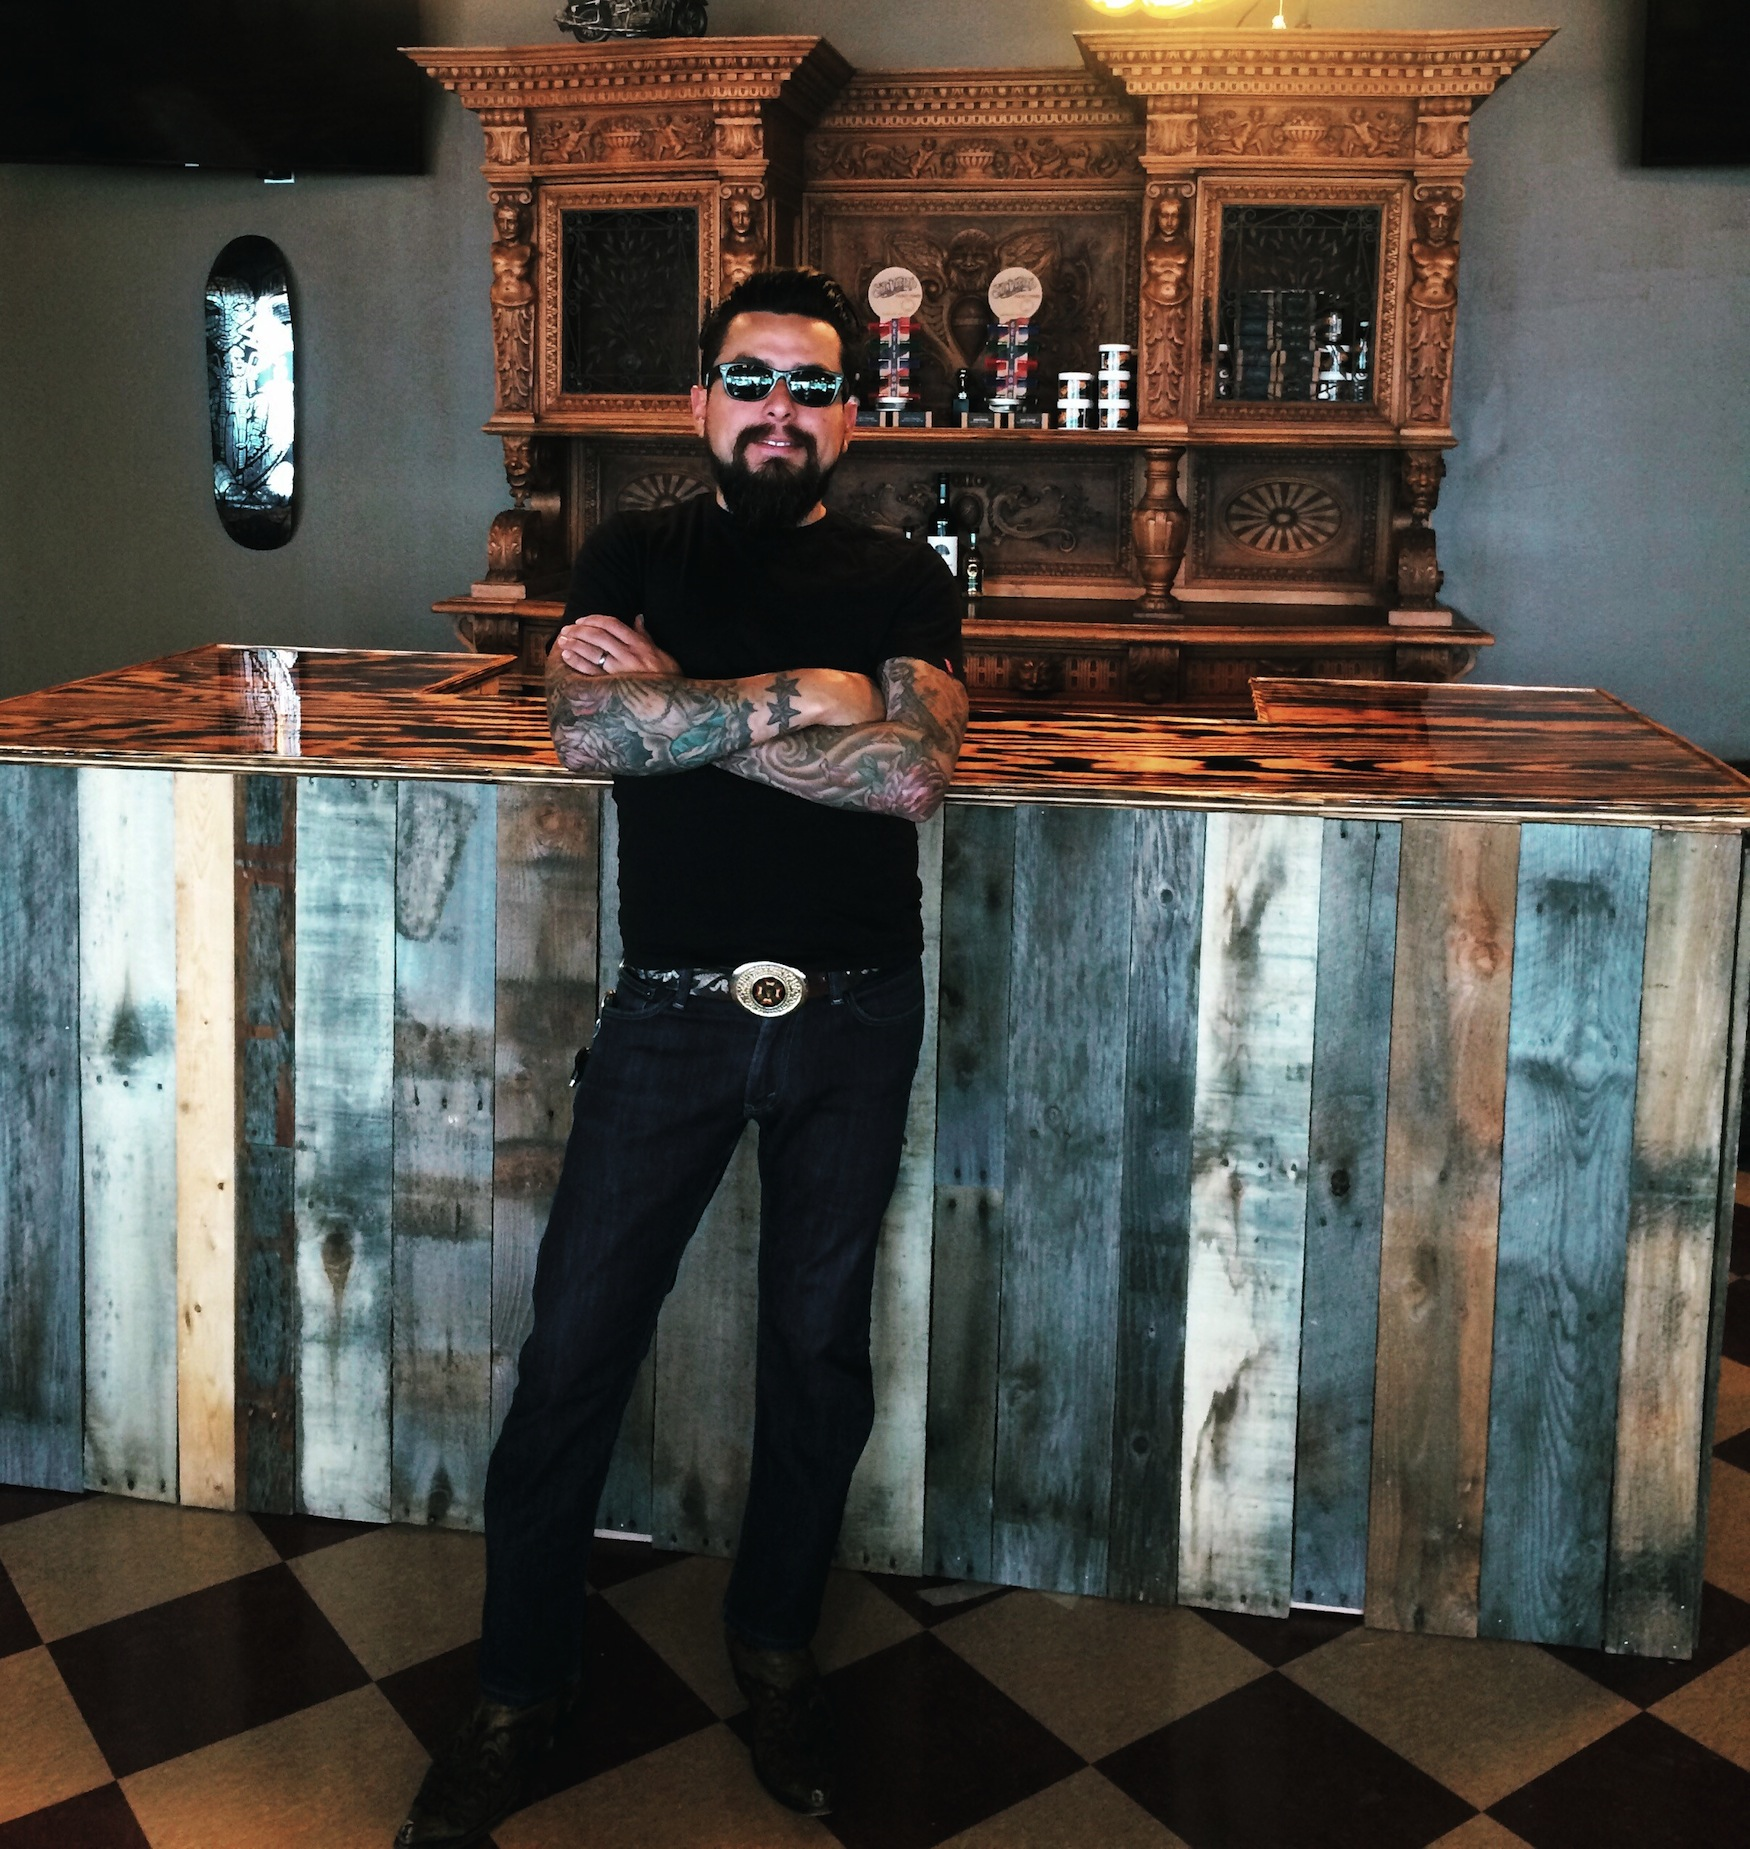 Man Cave Clothing Store : Dallas ultimate man cave a trendy barber shop creates